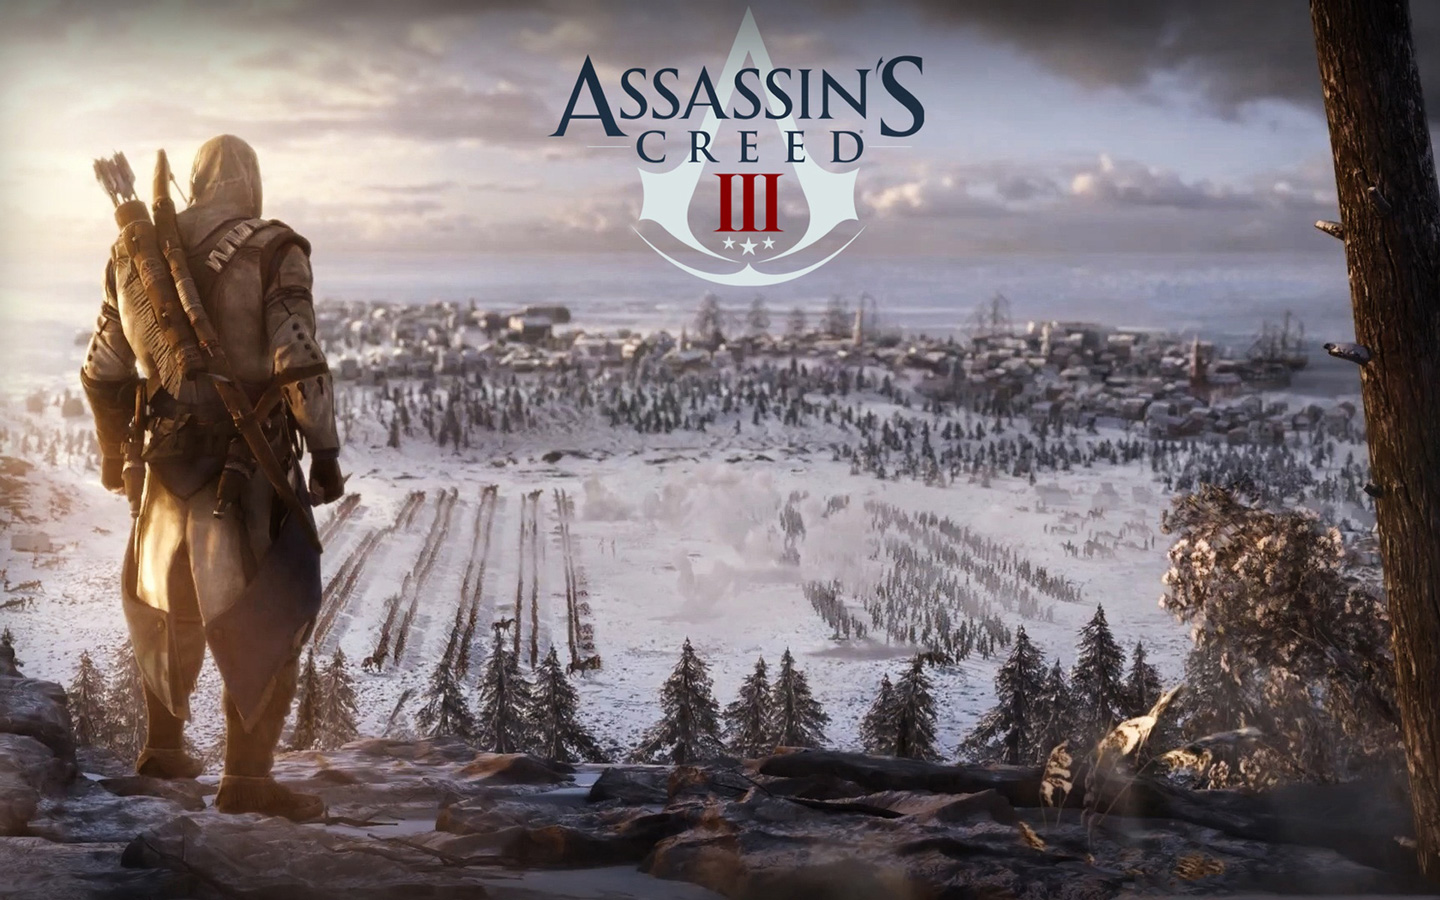 Assassins Creed III HD Wallpapers Review Kinect and Xbox 360 Games 1440x900